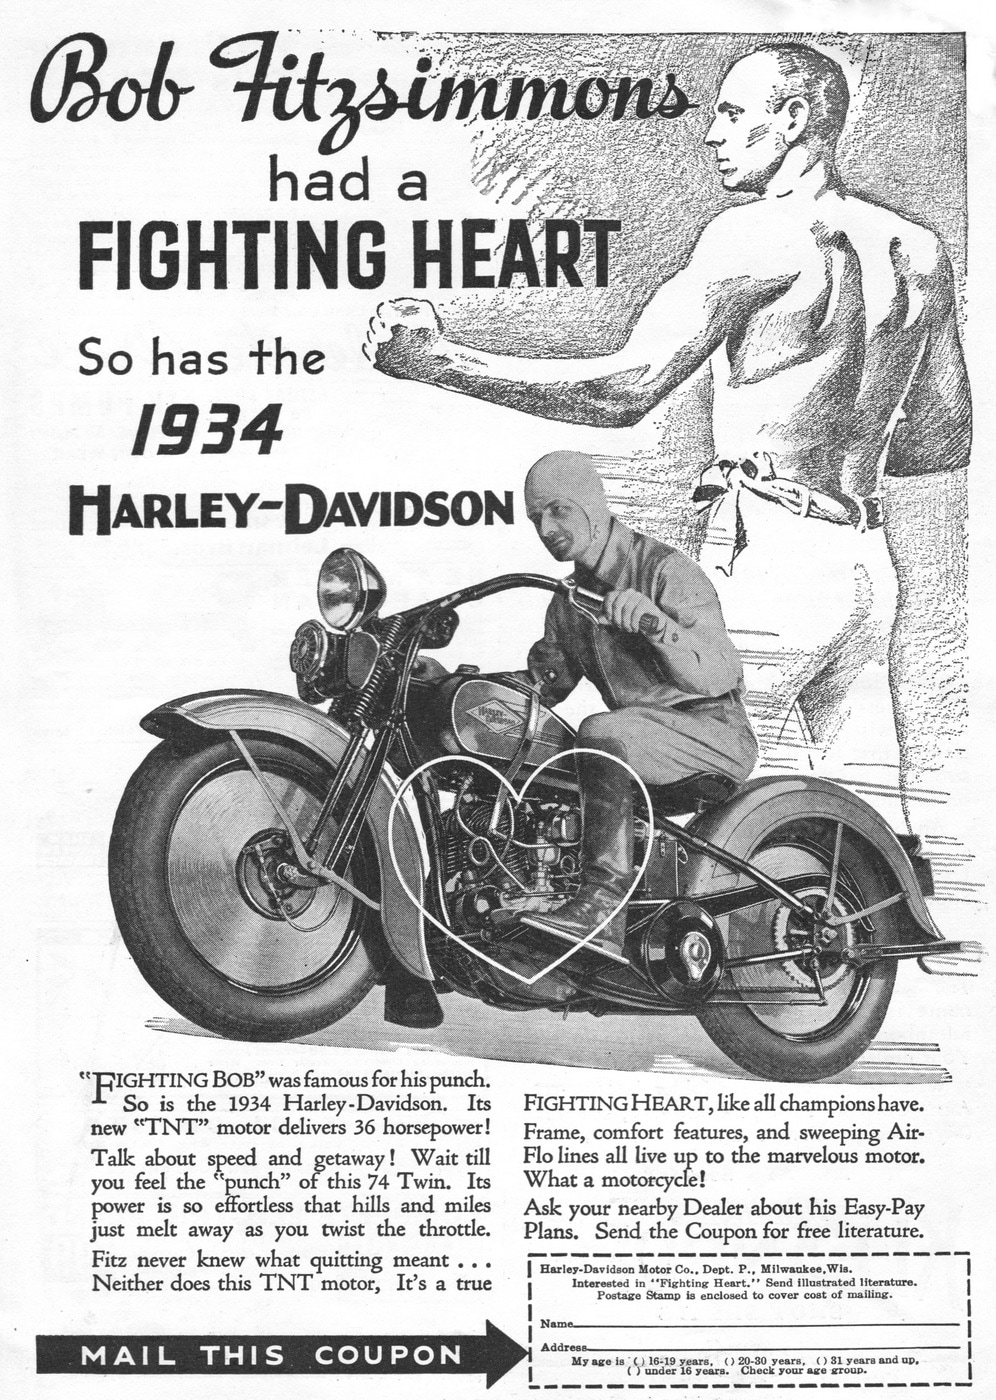 Harley-Davidson with Bob Fitzsimmons